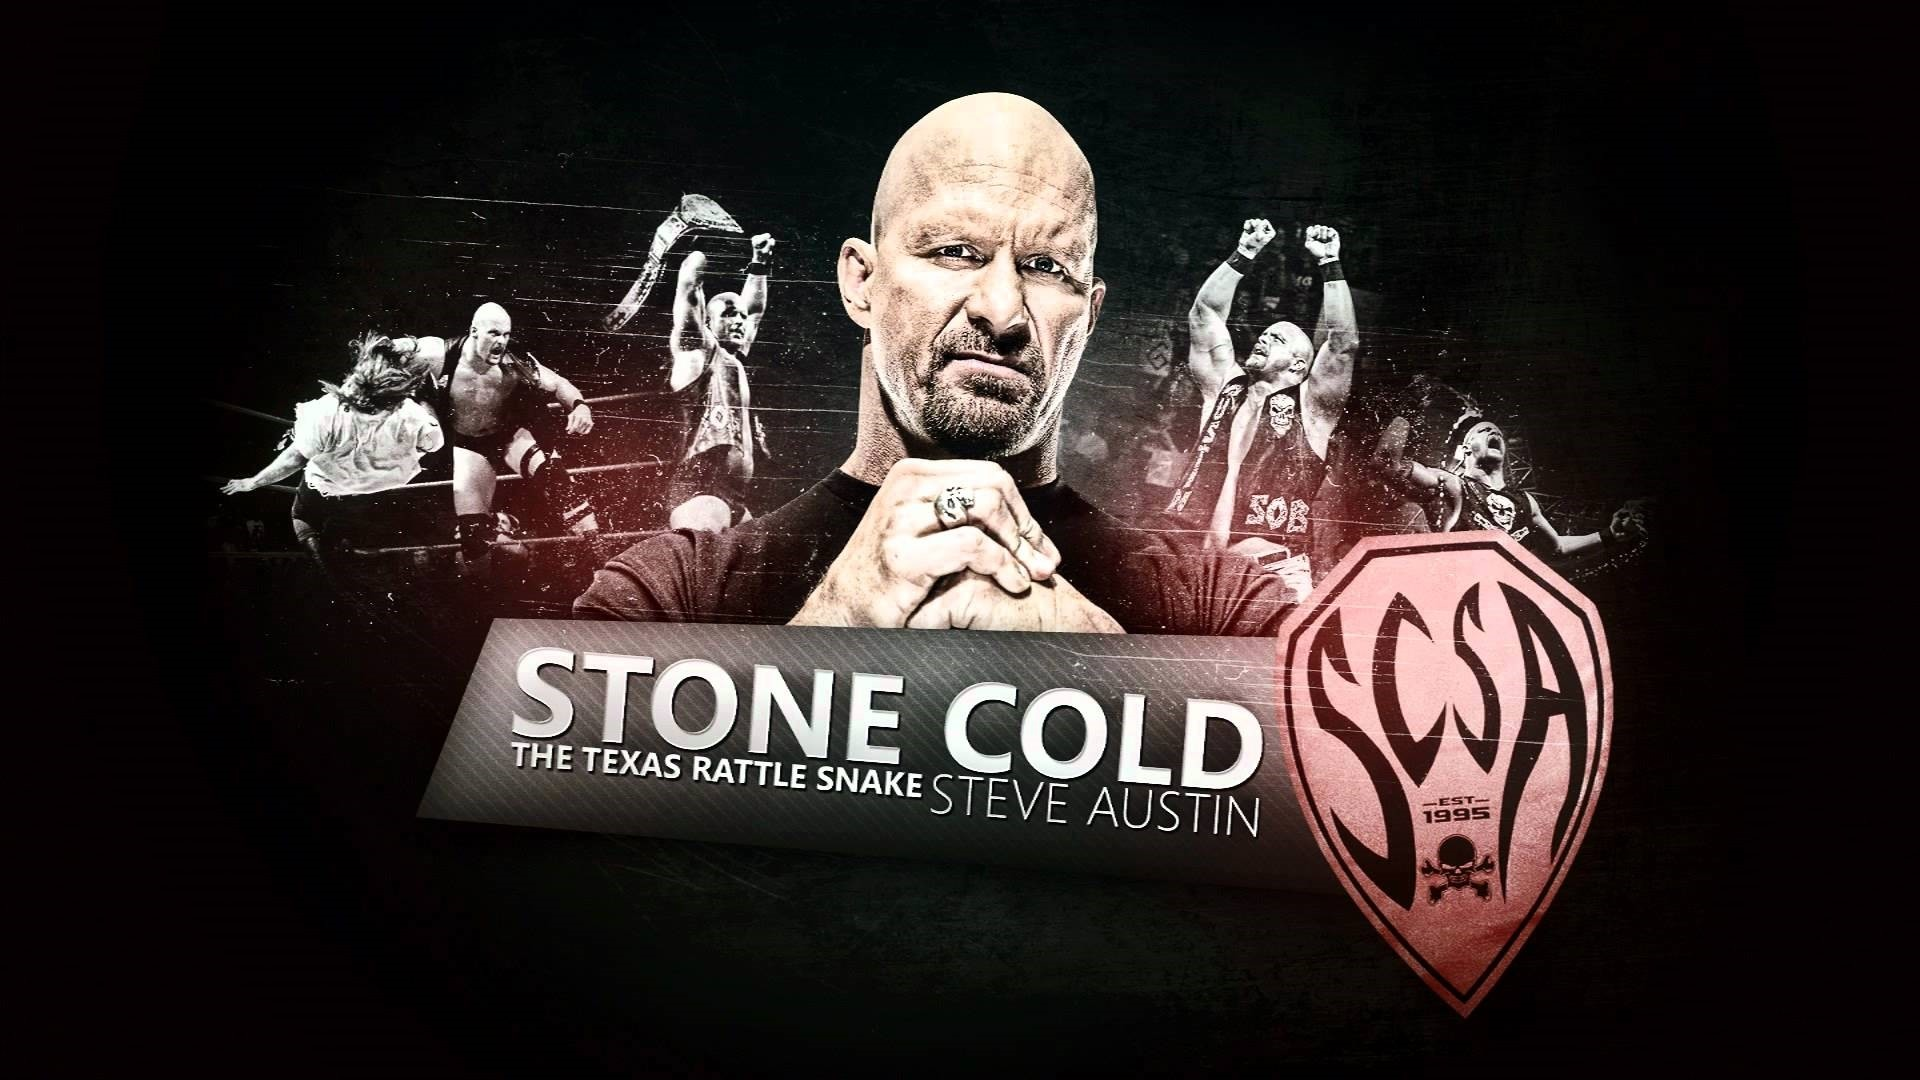 1920x1080 stone-cold-steve-austin-hd-images-8 | Stone Cold Steve Austin HD Images |  Pinterest | Stone cold steve, Steve austin and Hd images